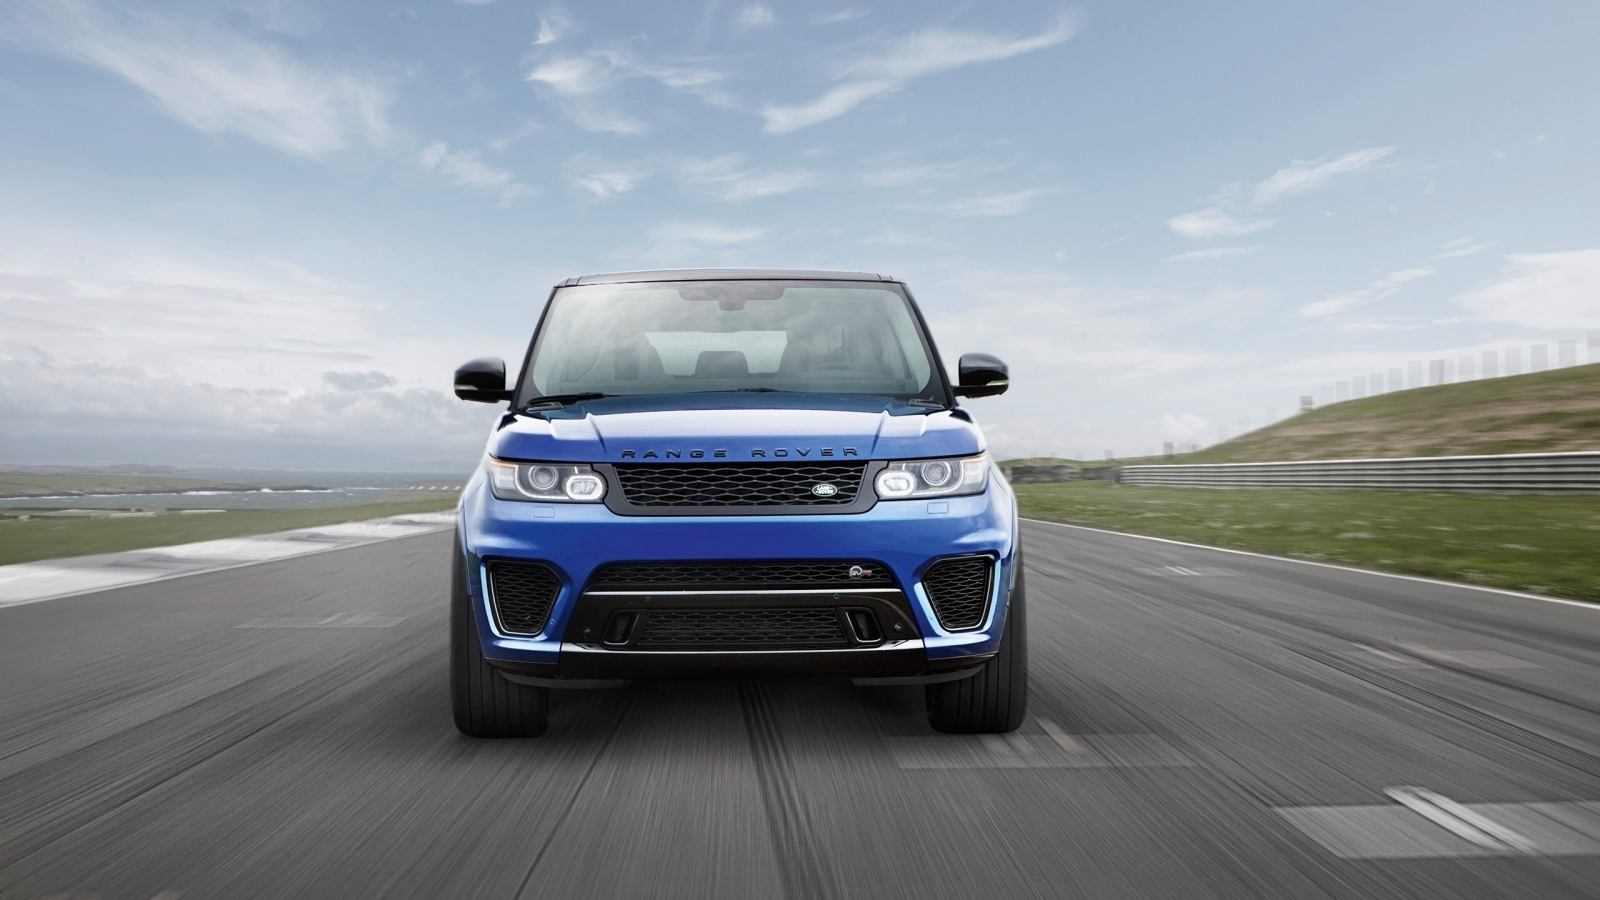 2019 Land Rover Range Rover Sport SVR photo - 5